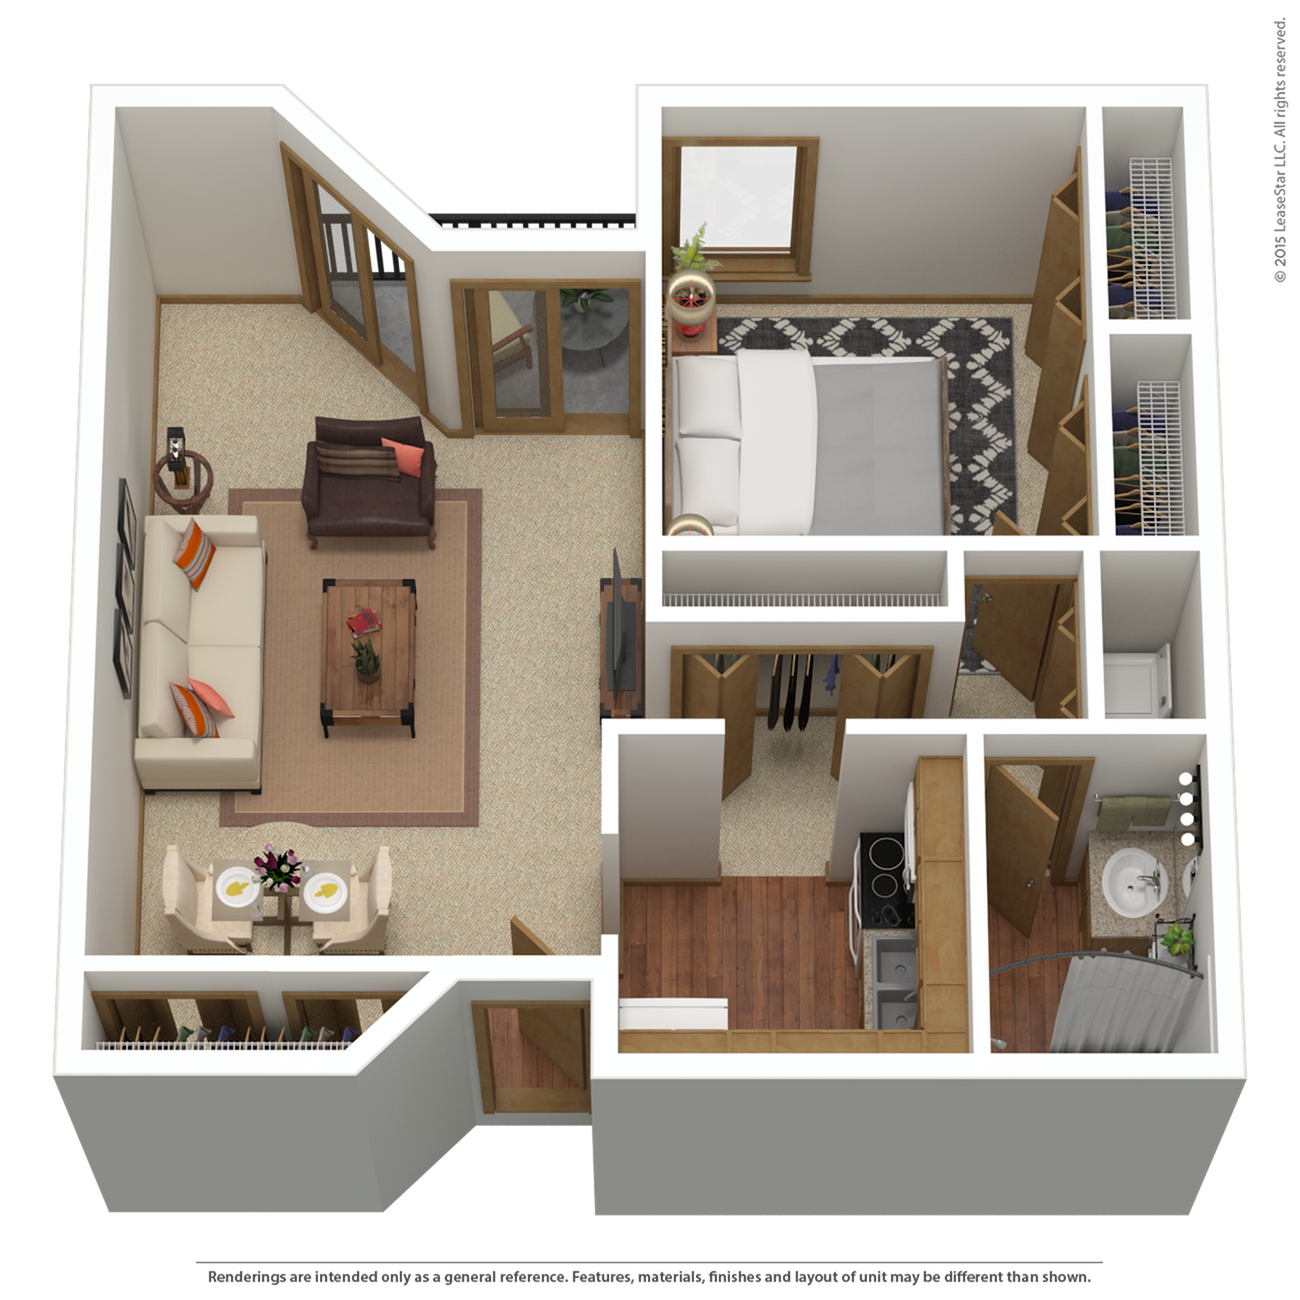 A7r | 1 bed 1 bath | from 932 sq. ft.